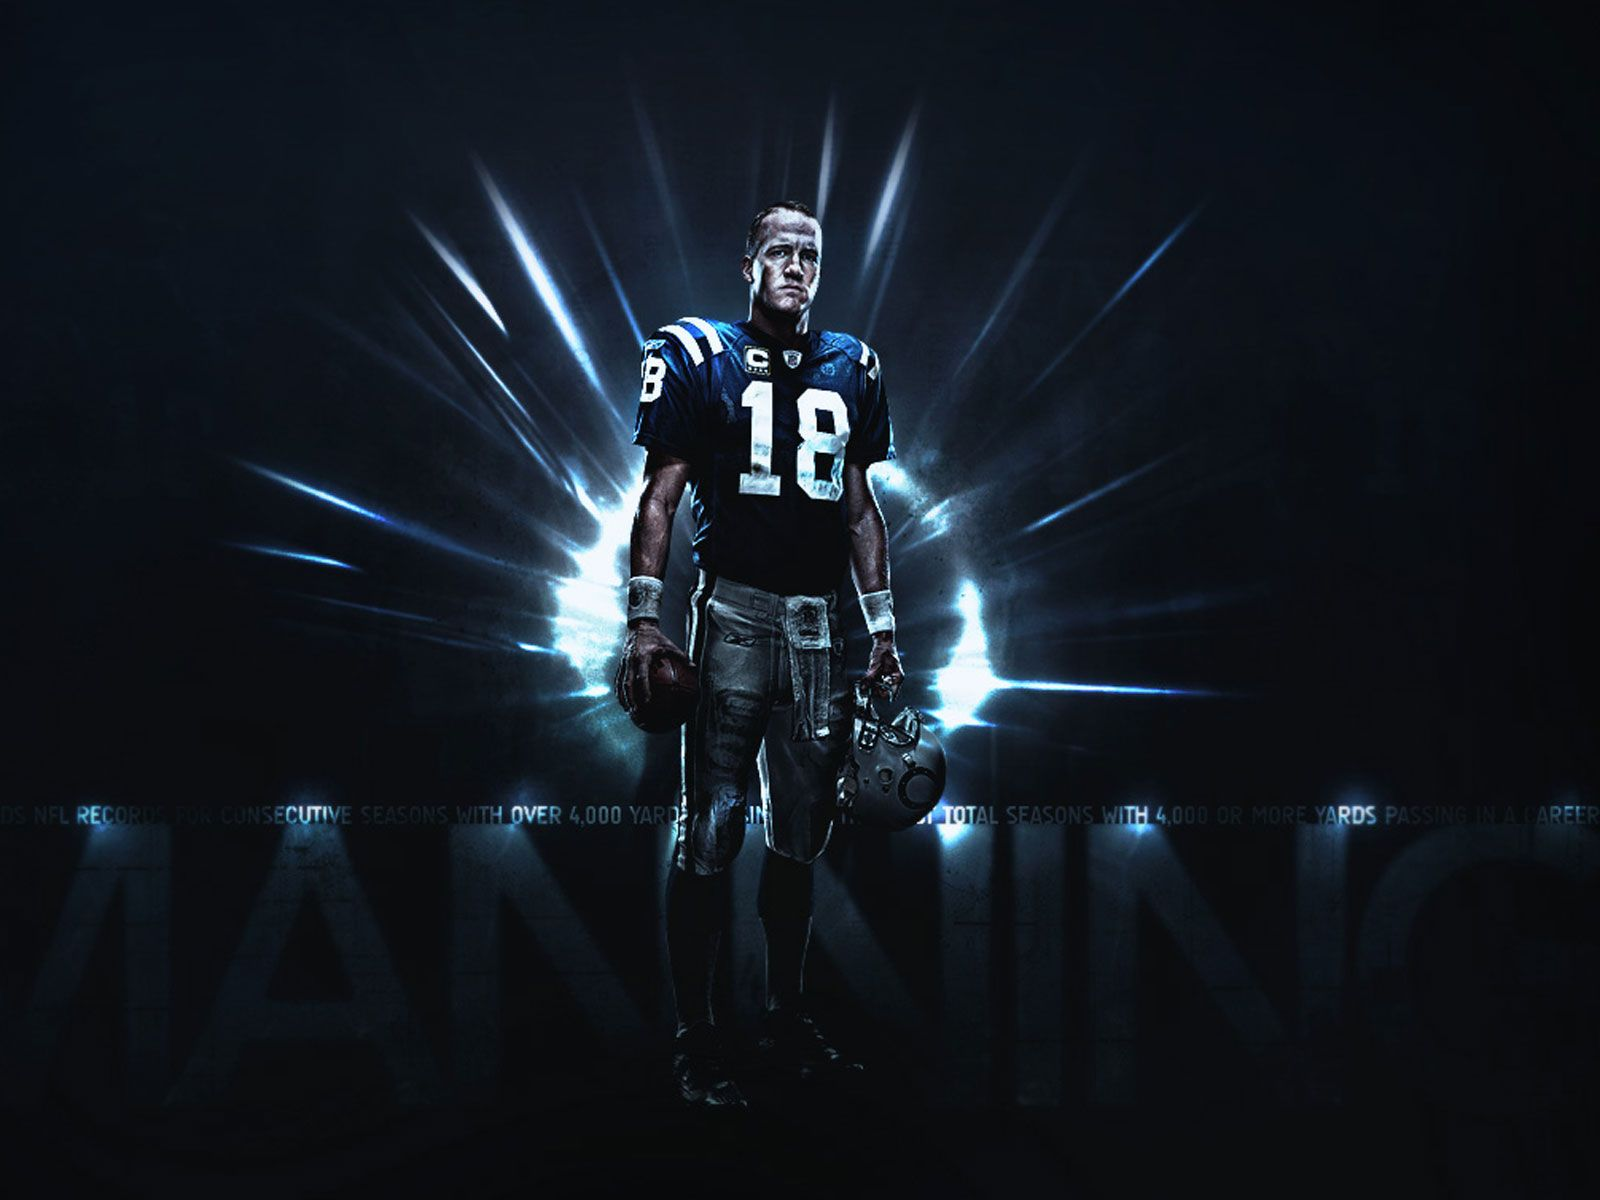 Peyton Manning Indianapolis Colts Poster Wallpaper